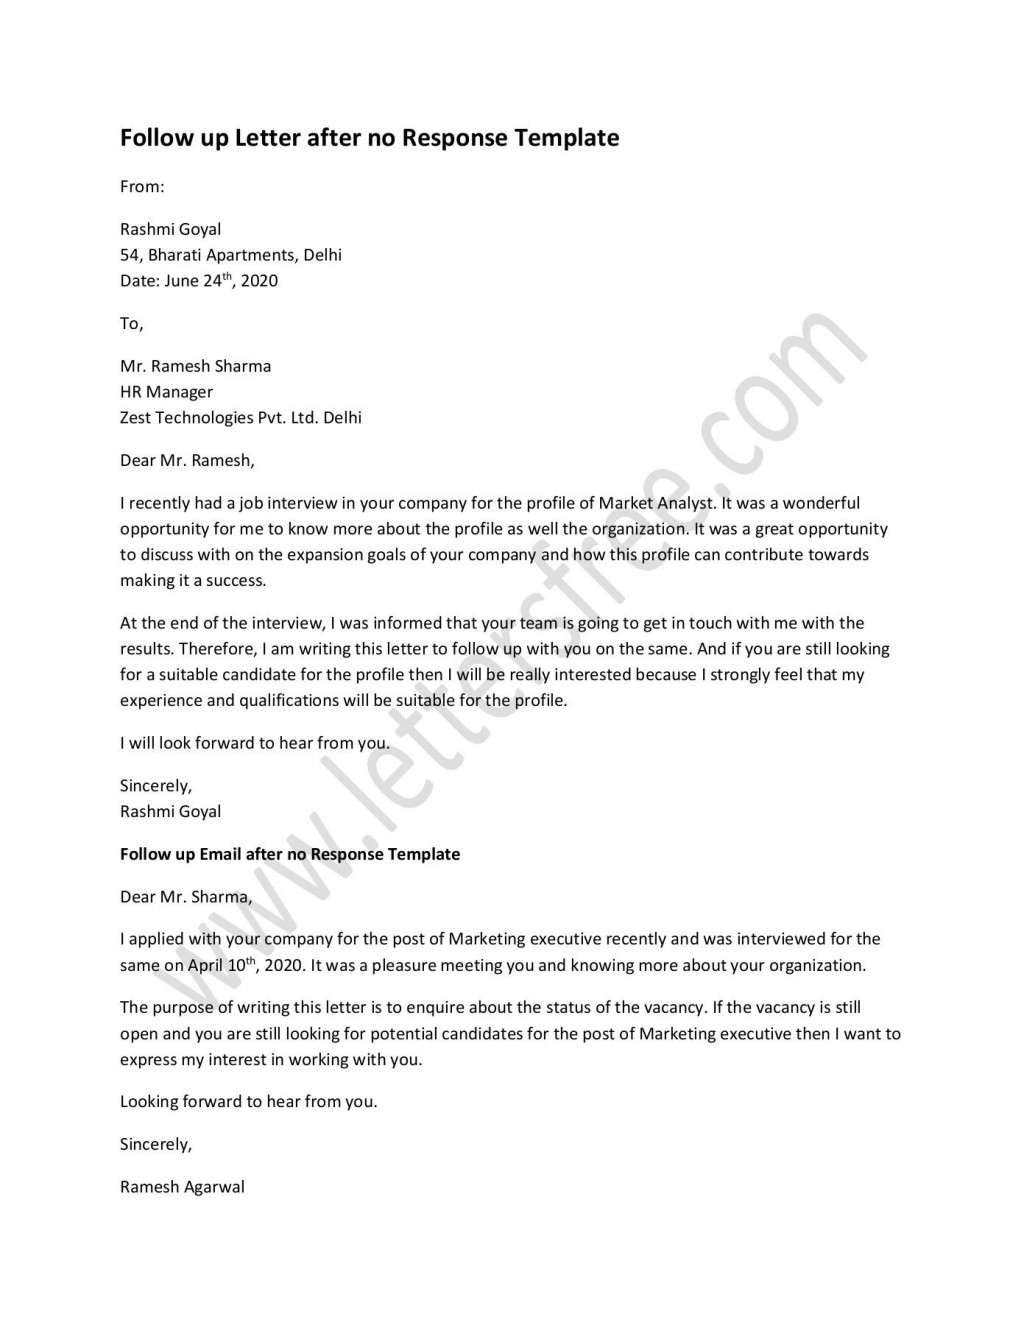 001 Awesome Follow Up Email Template After No Response Picture Large